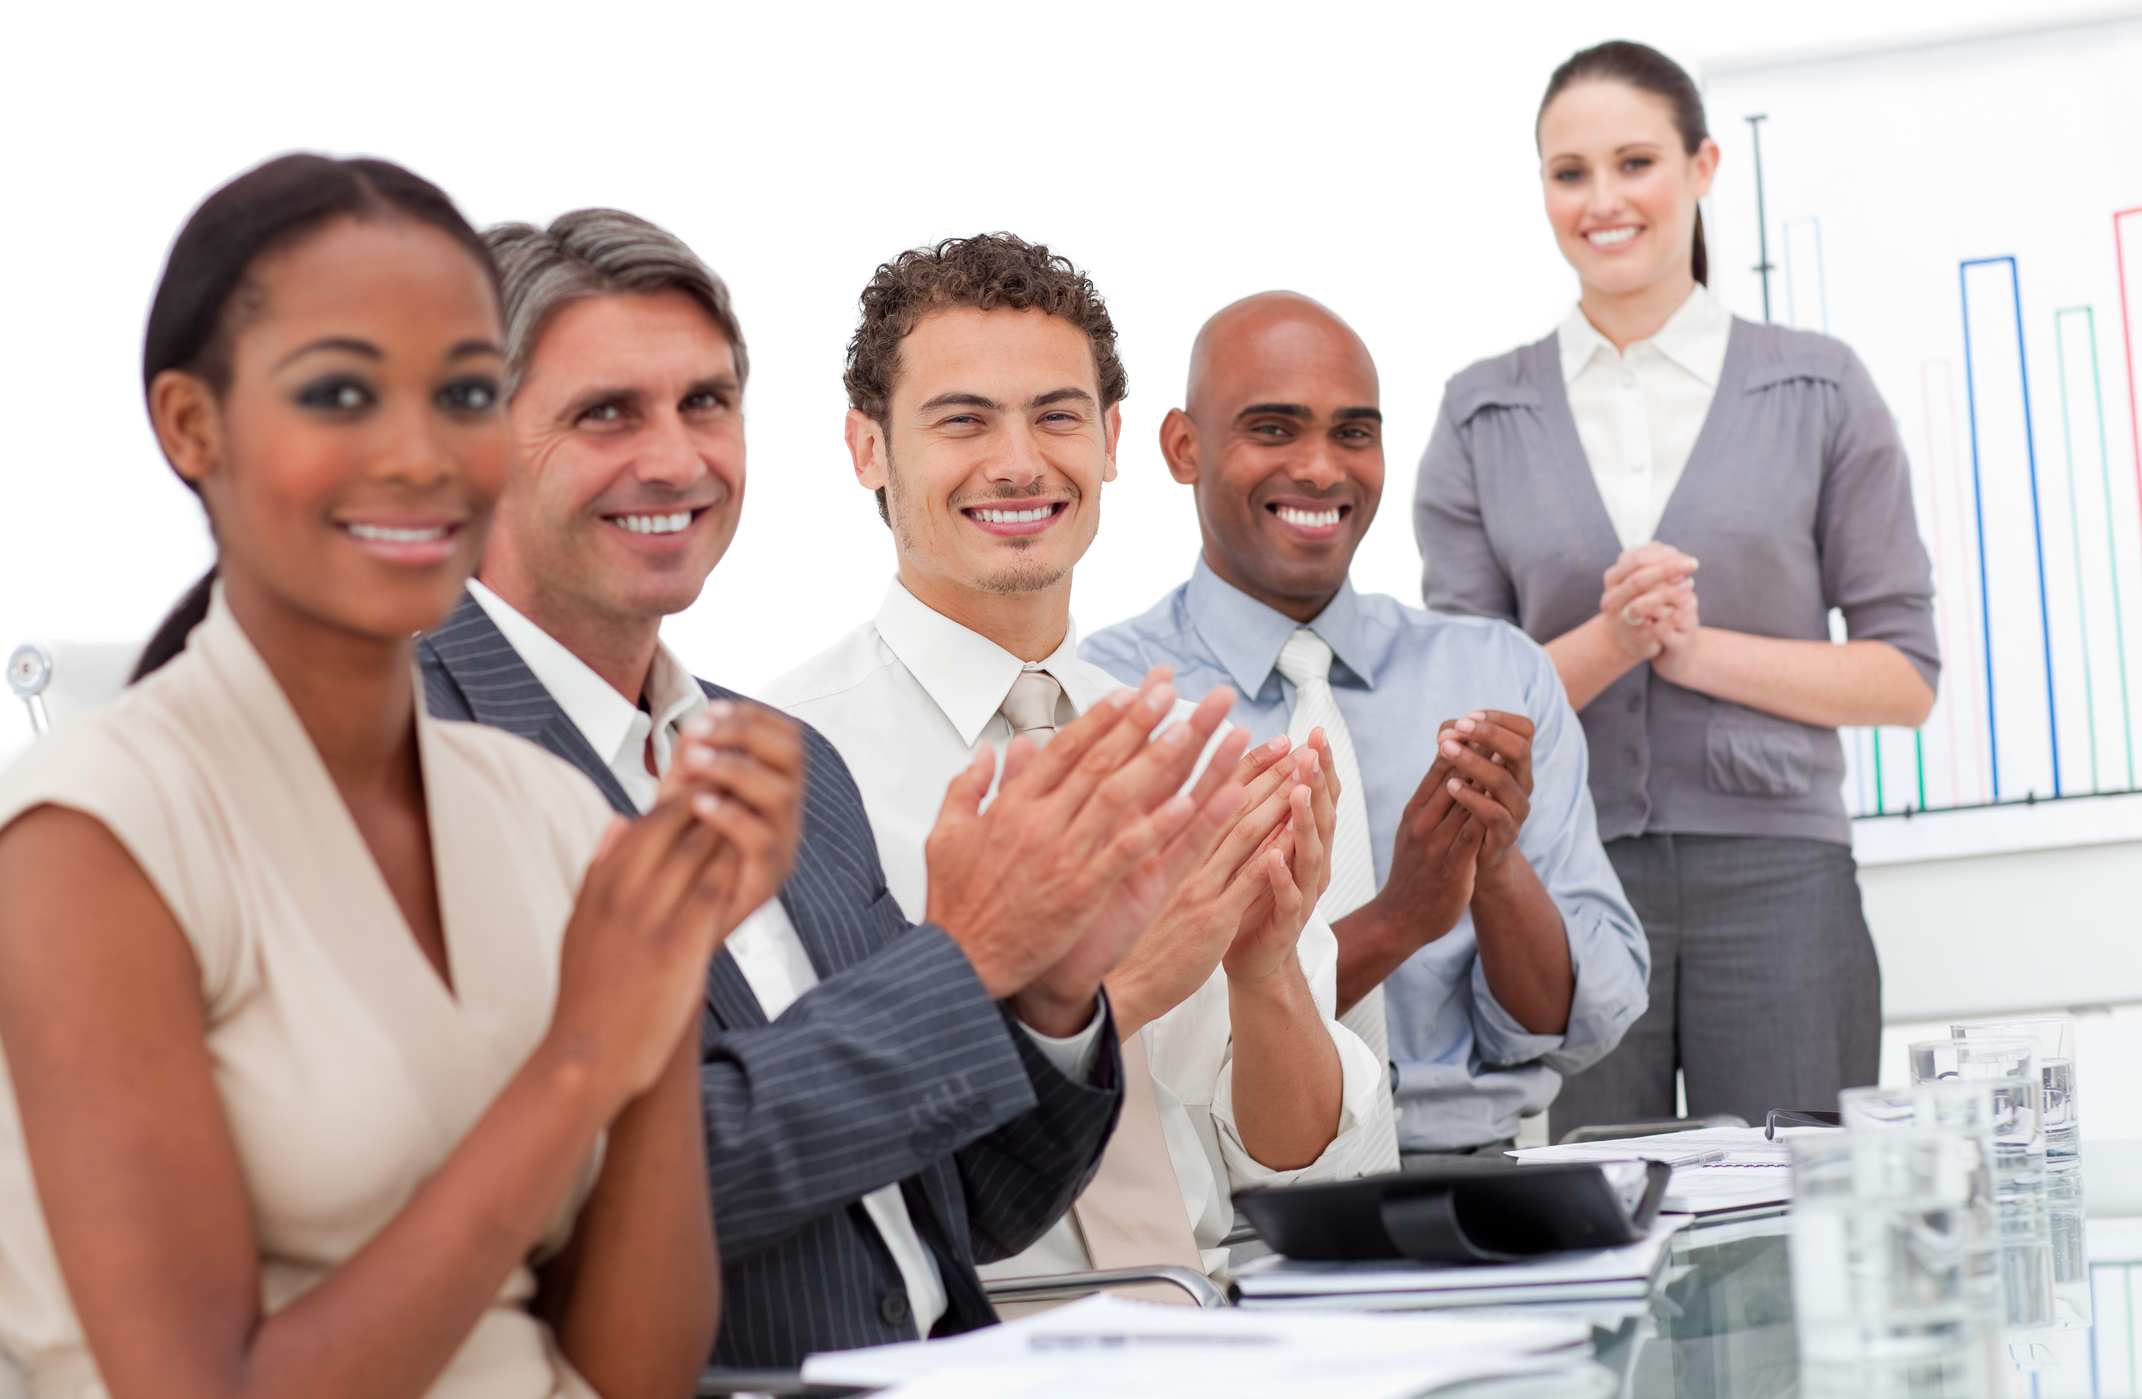 http://www.dreamstime.com/stock-photo-happy-business-team-applauding-good-presentation-image12975020